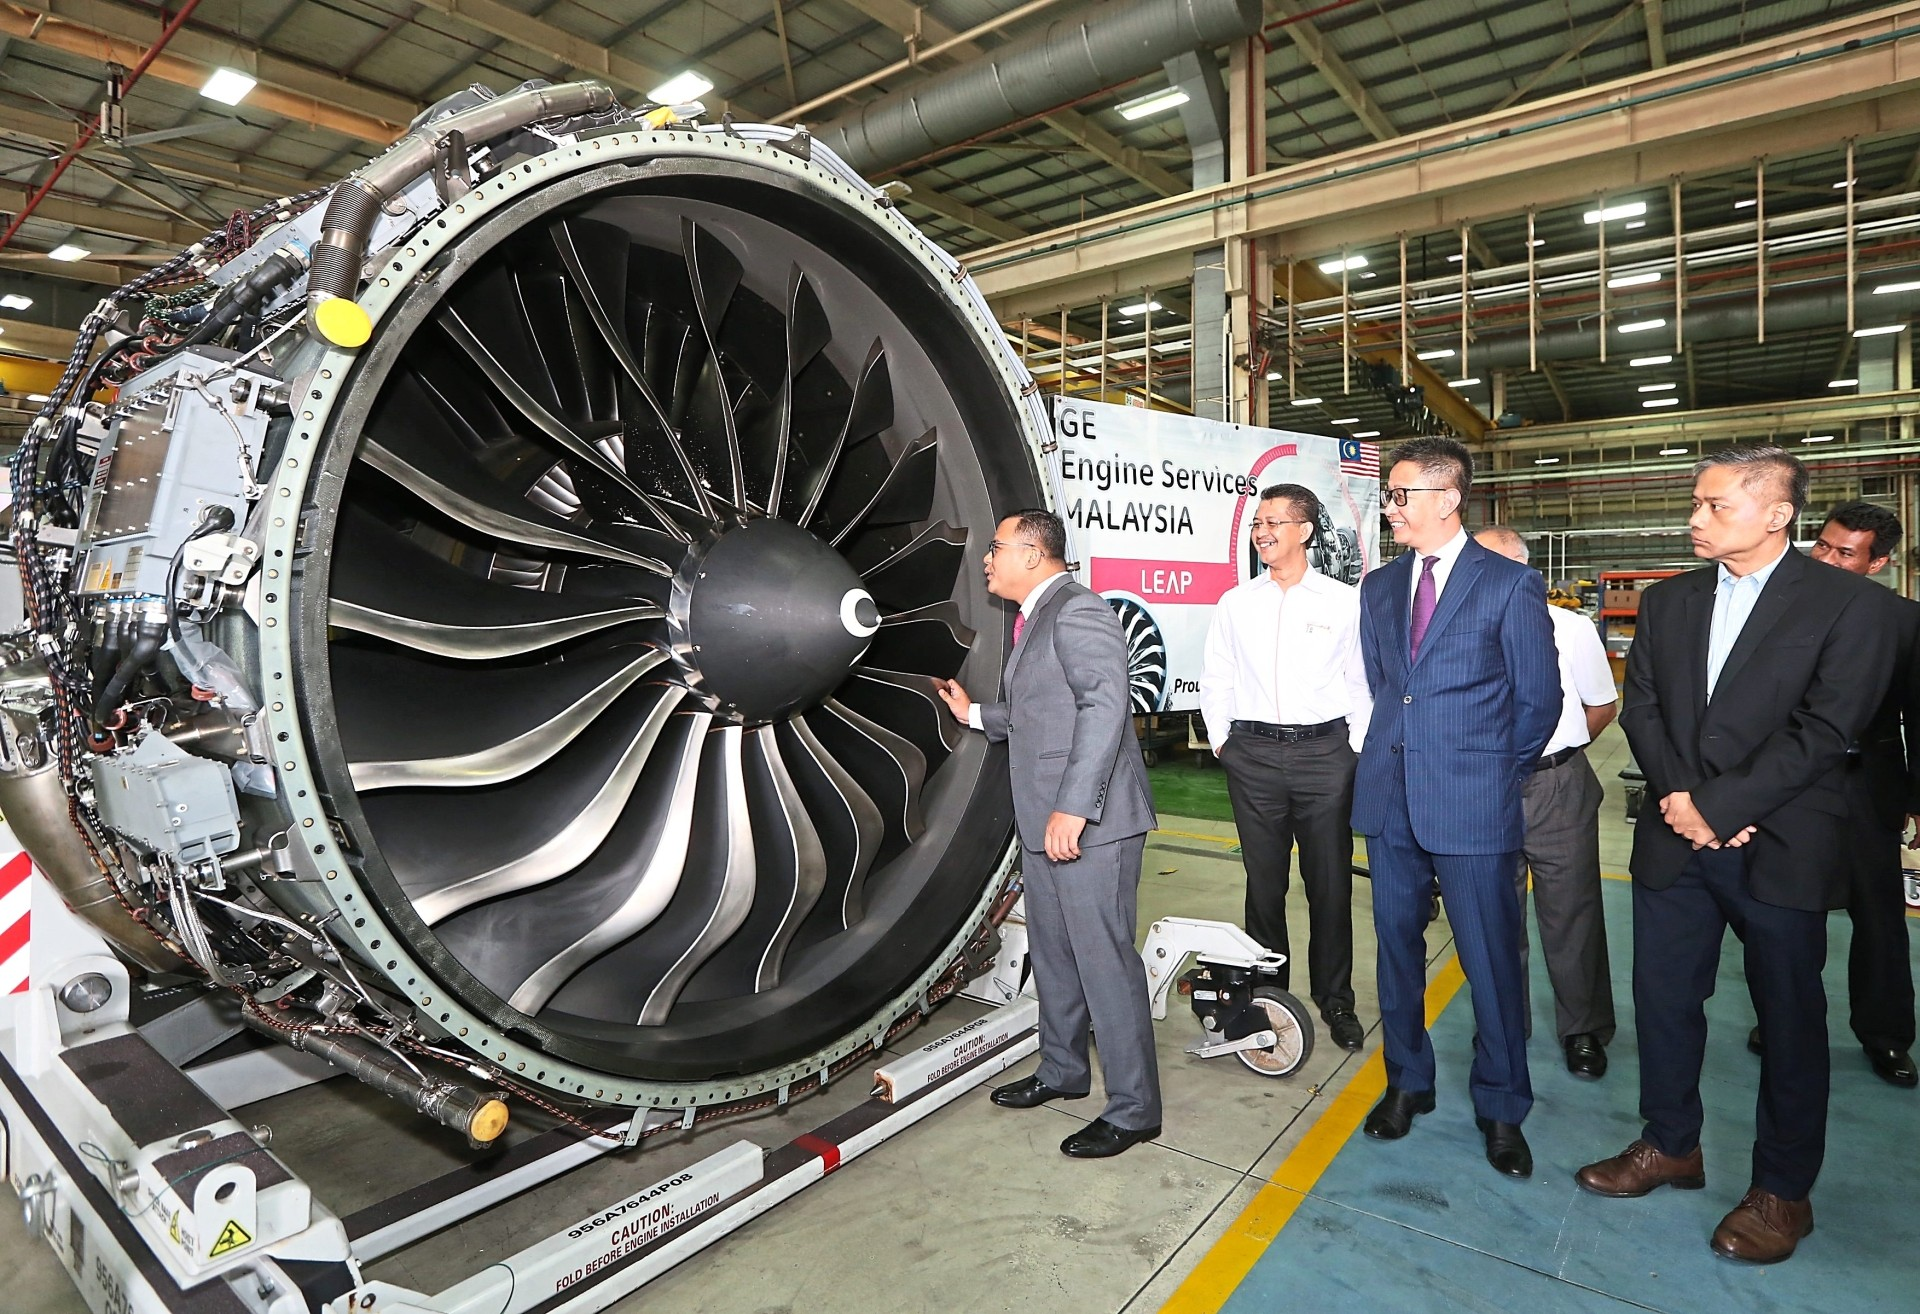 Smart Selangor is the highlight of Budget 2020, says Amirudin who is looking into an airplane engine after attending a Smart Selangor apprenticeship graduation in this file photo.